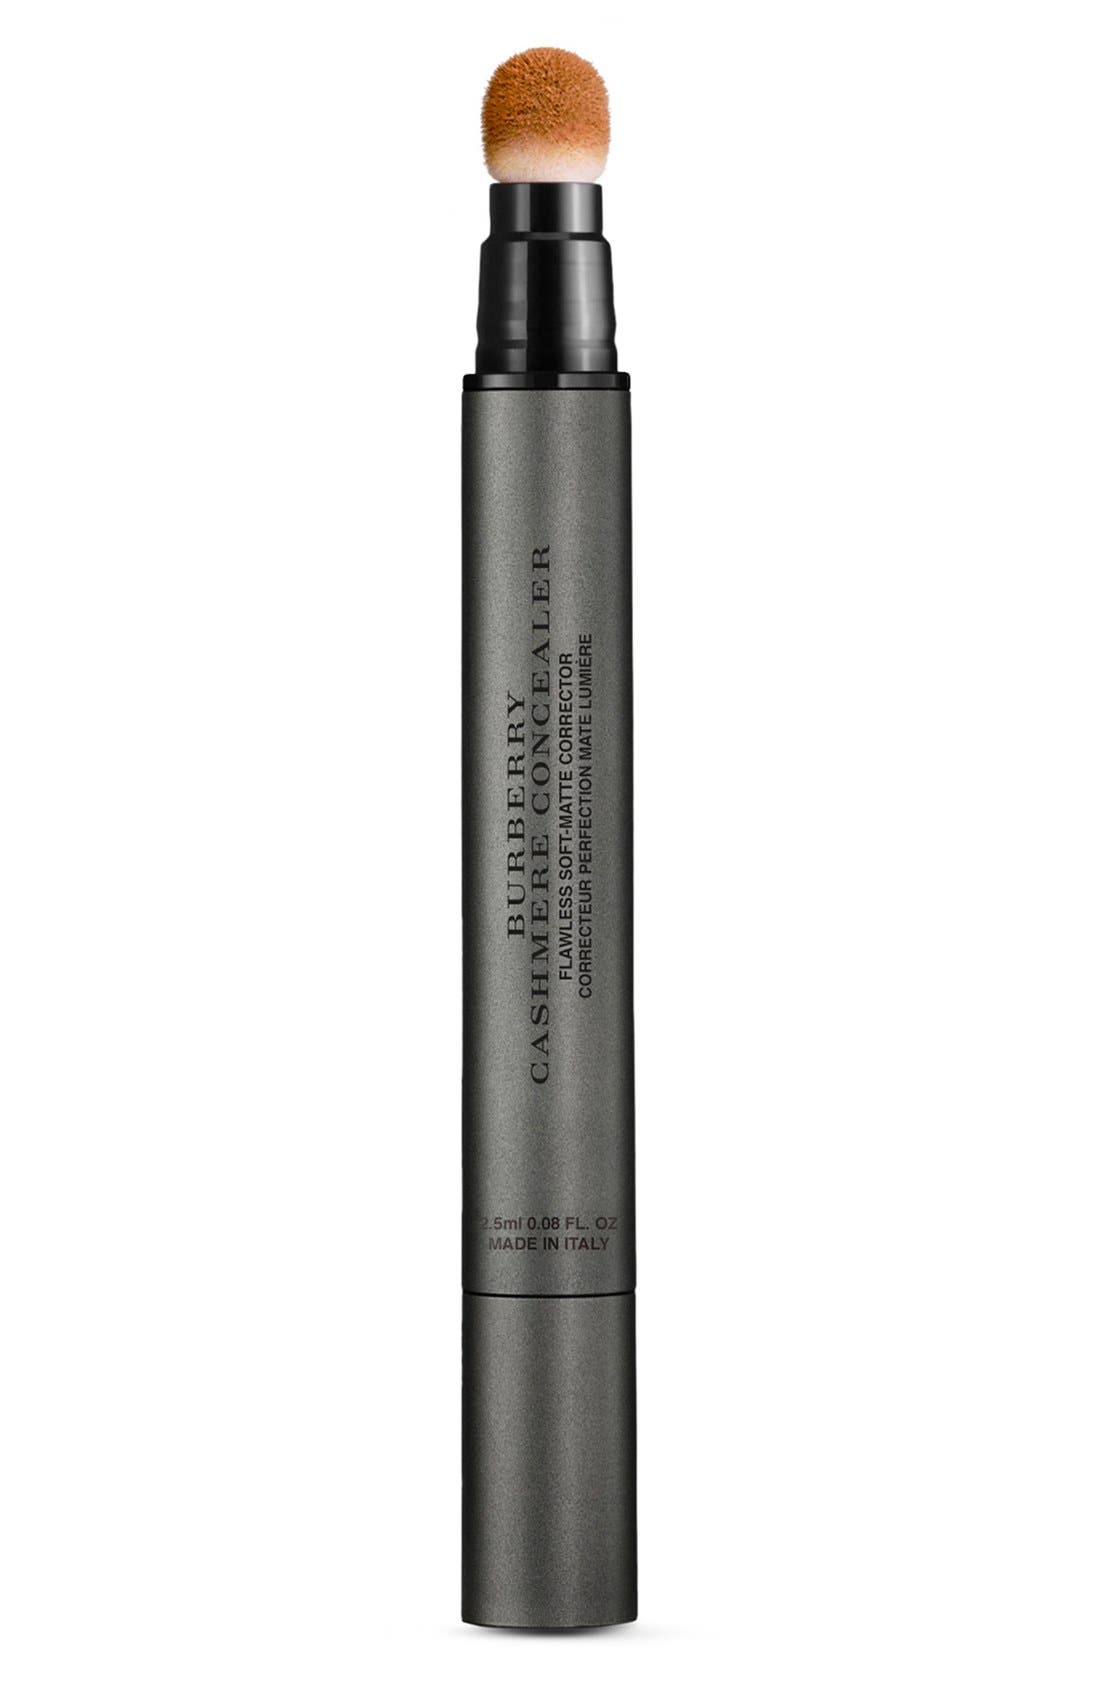 Burberry Beauty Cashmere Concealer